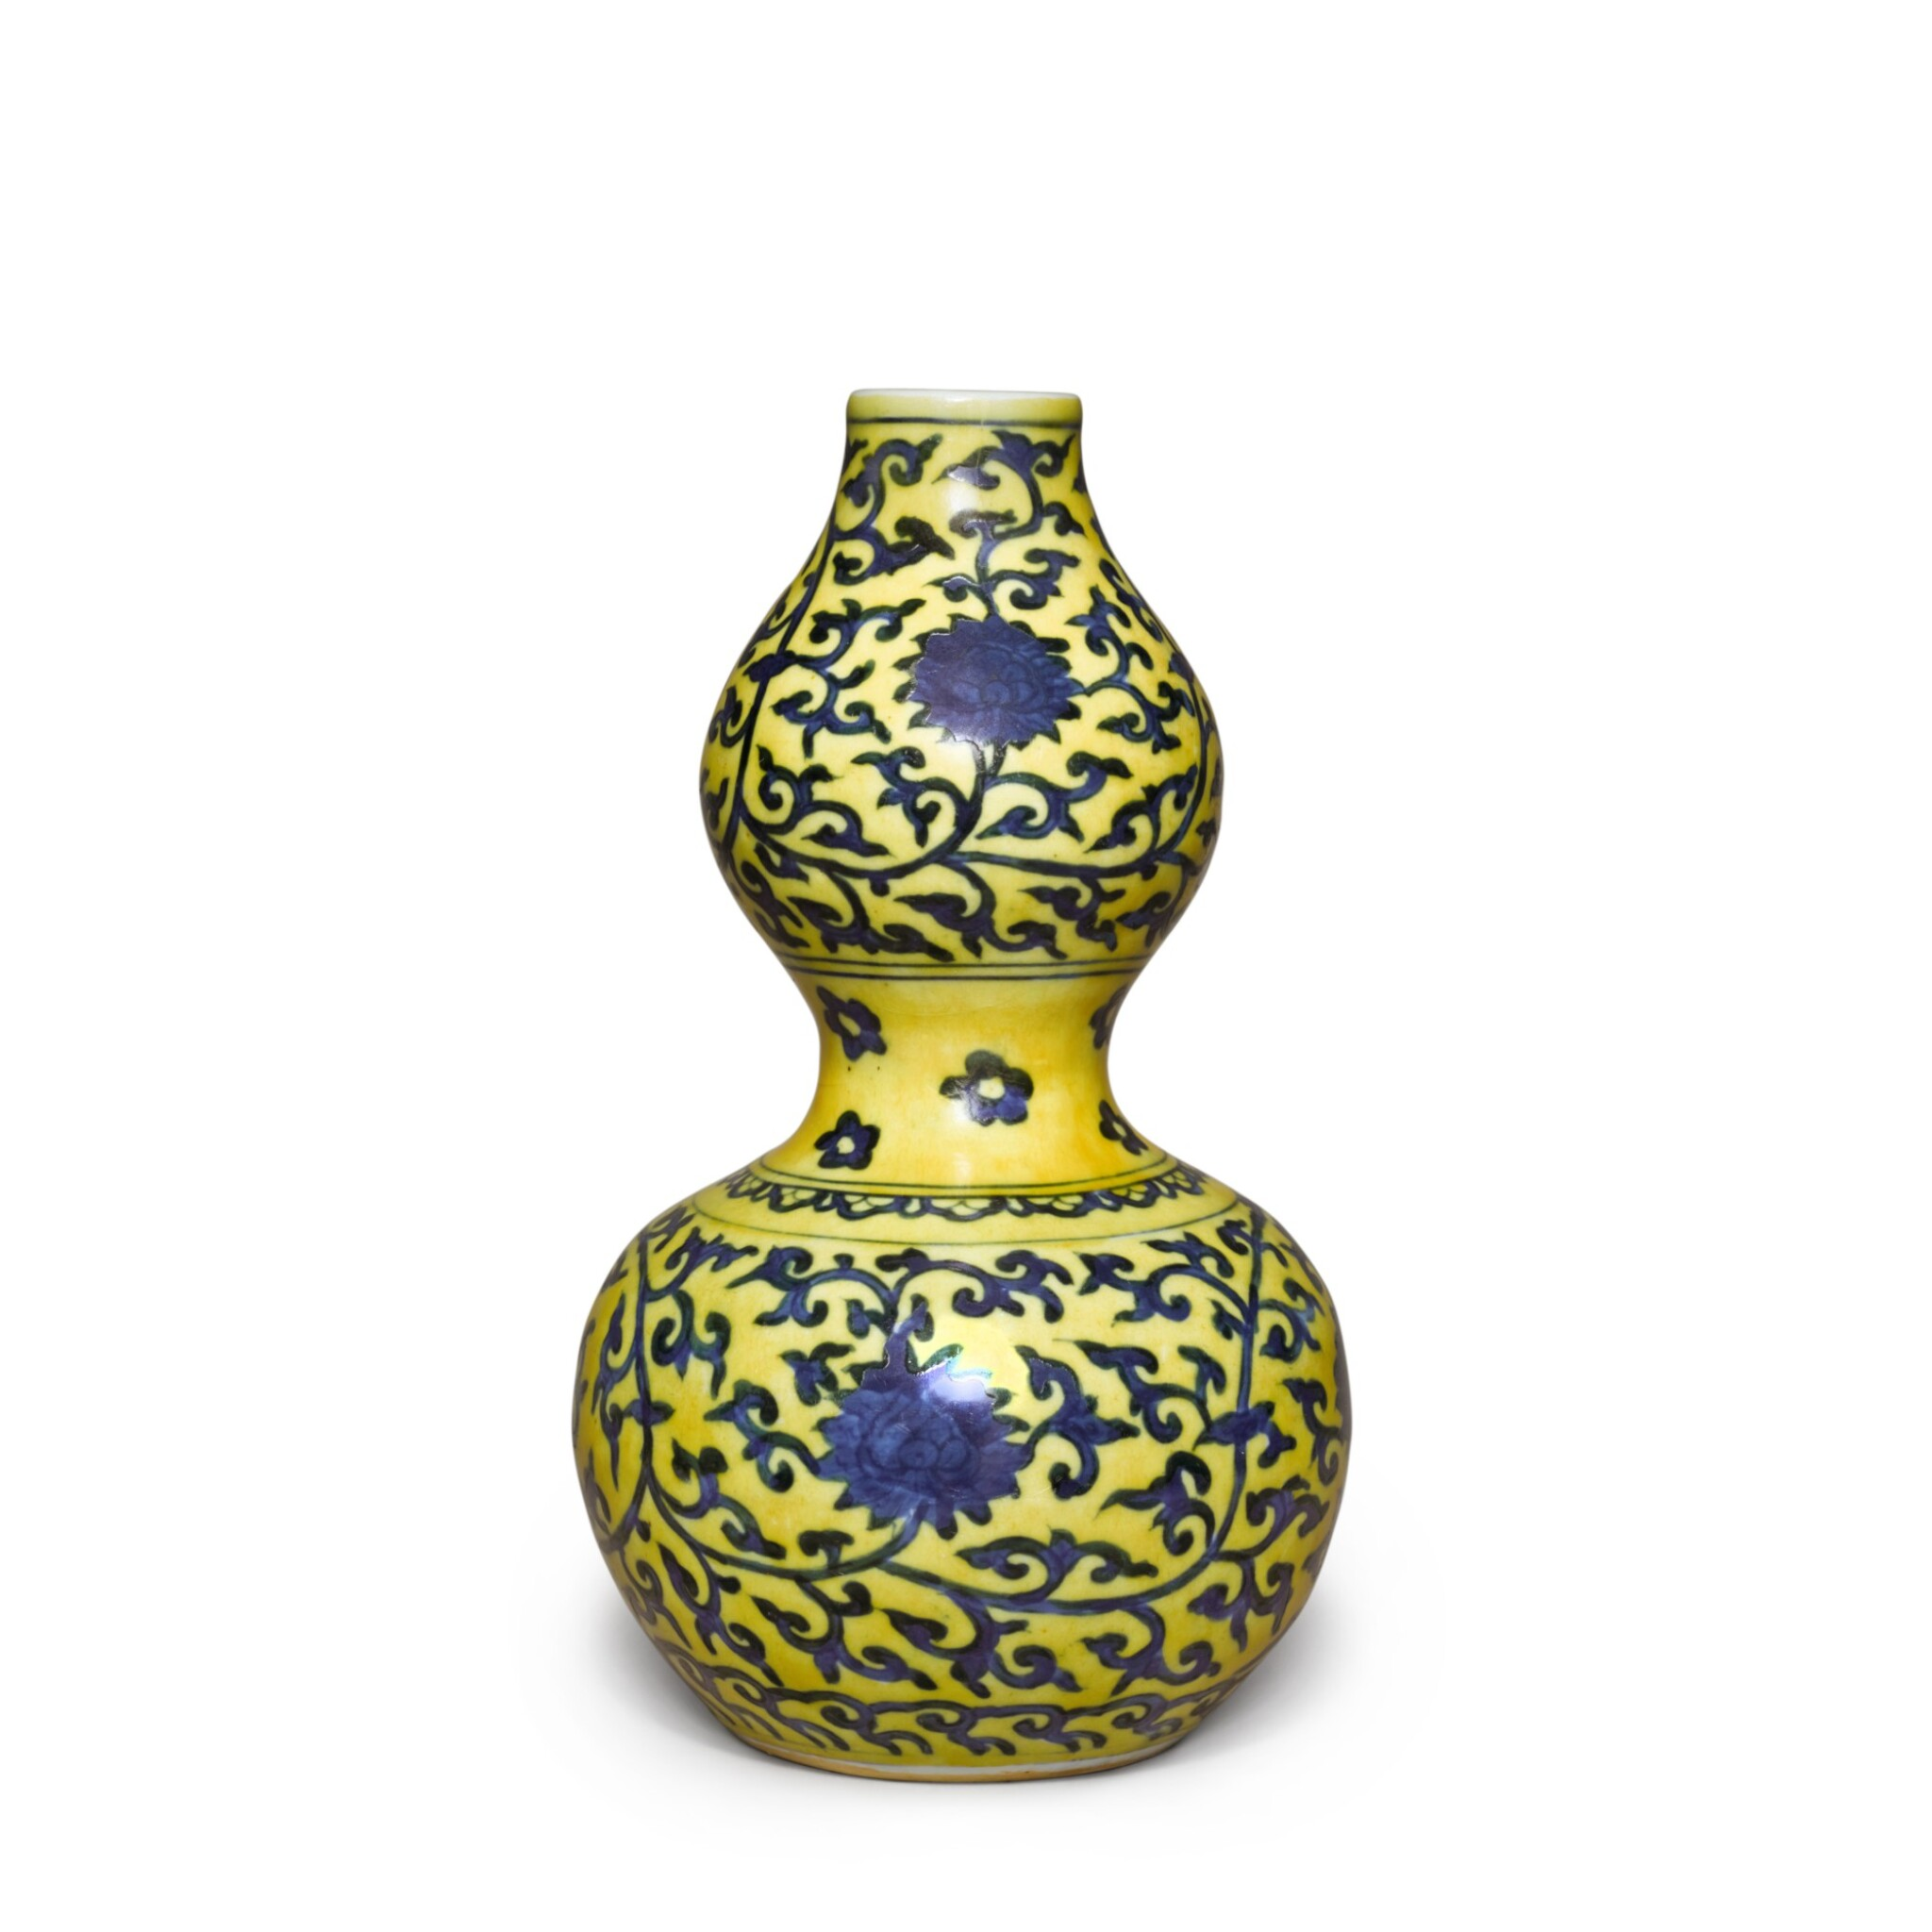 View full screen - View 1 of Lot 83. A yellow-ground underglaze-blue 'double-gourd' vase, Mark and period of Jiajing | 明嘉靖 黃地青花纏枝蓮紋葫蘆瓶 《大明嘉靖年製》款.